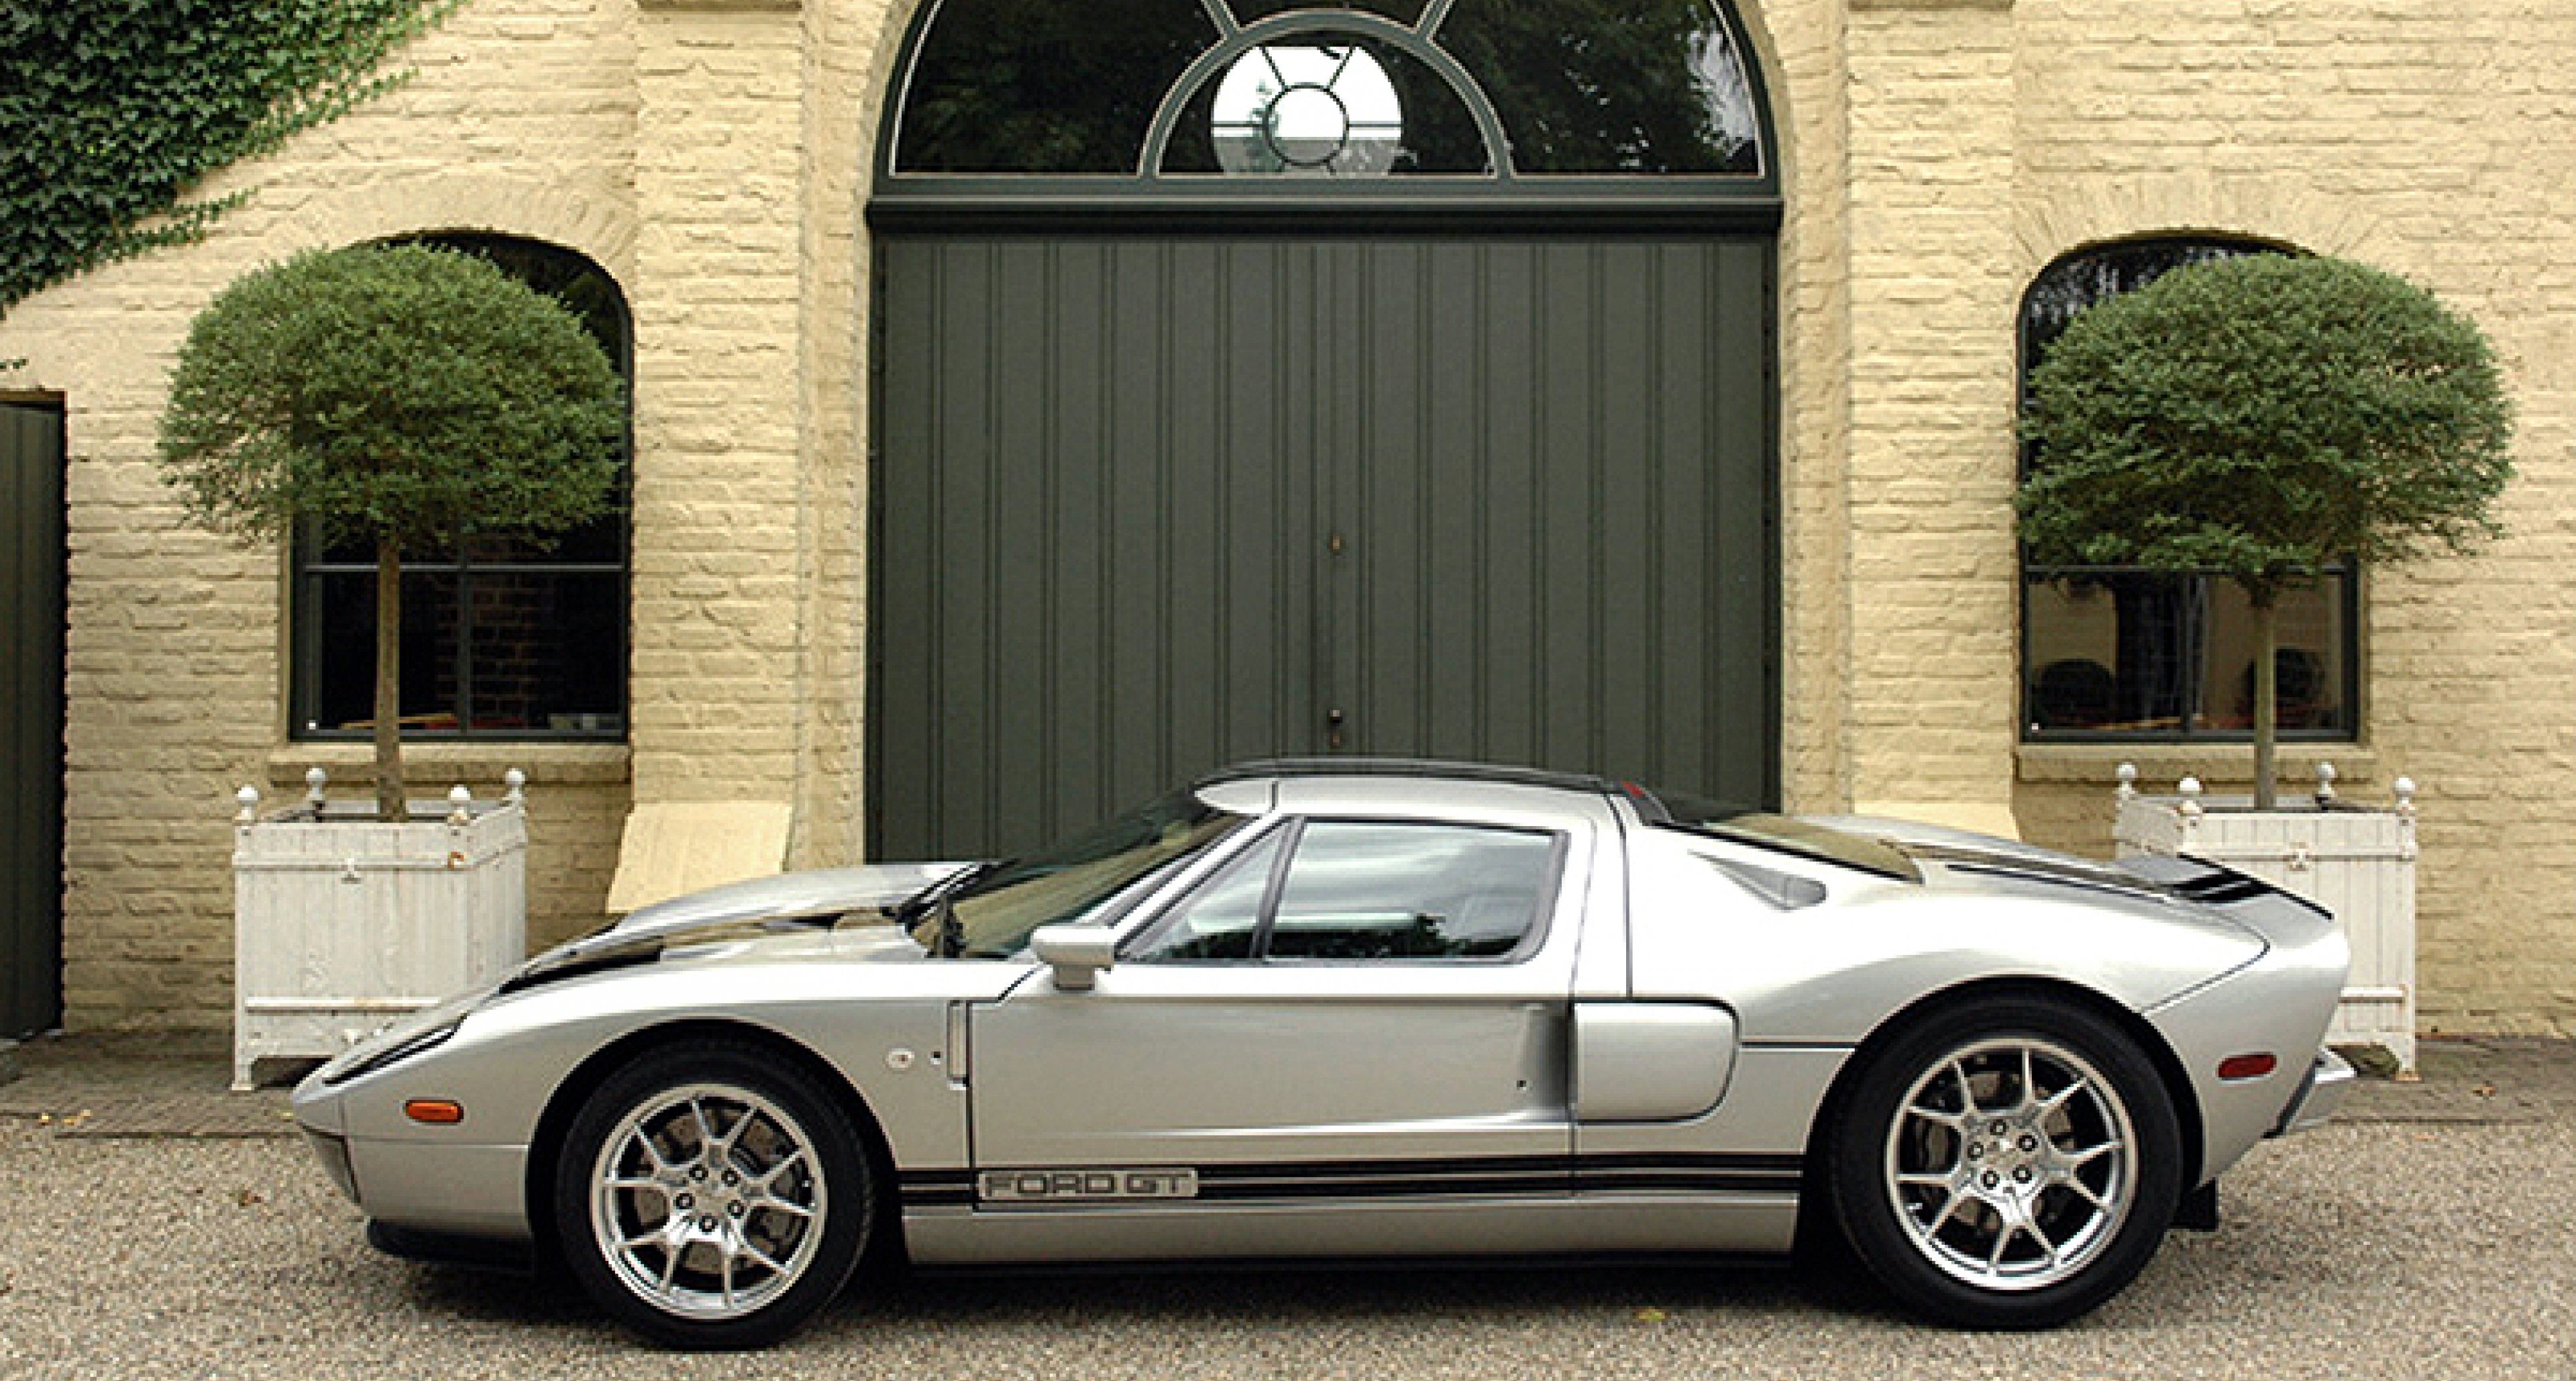 Ford GT: From subject to king in a decade